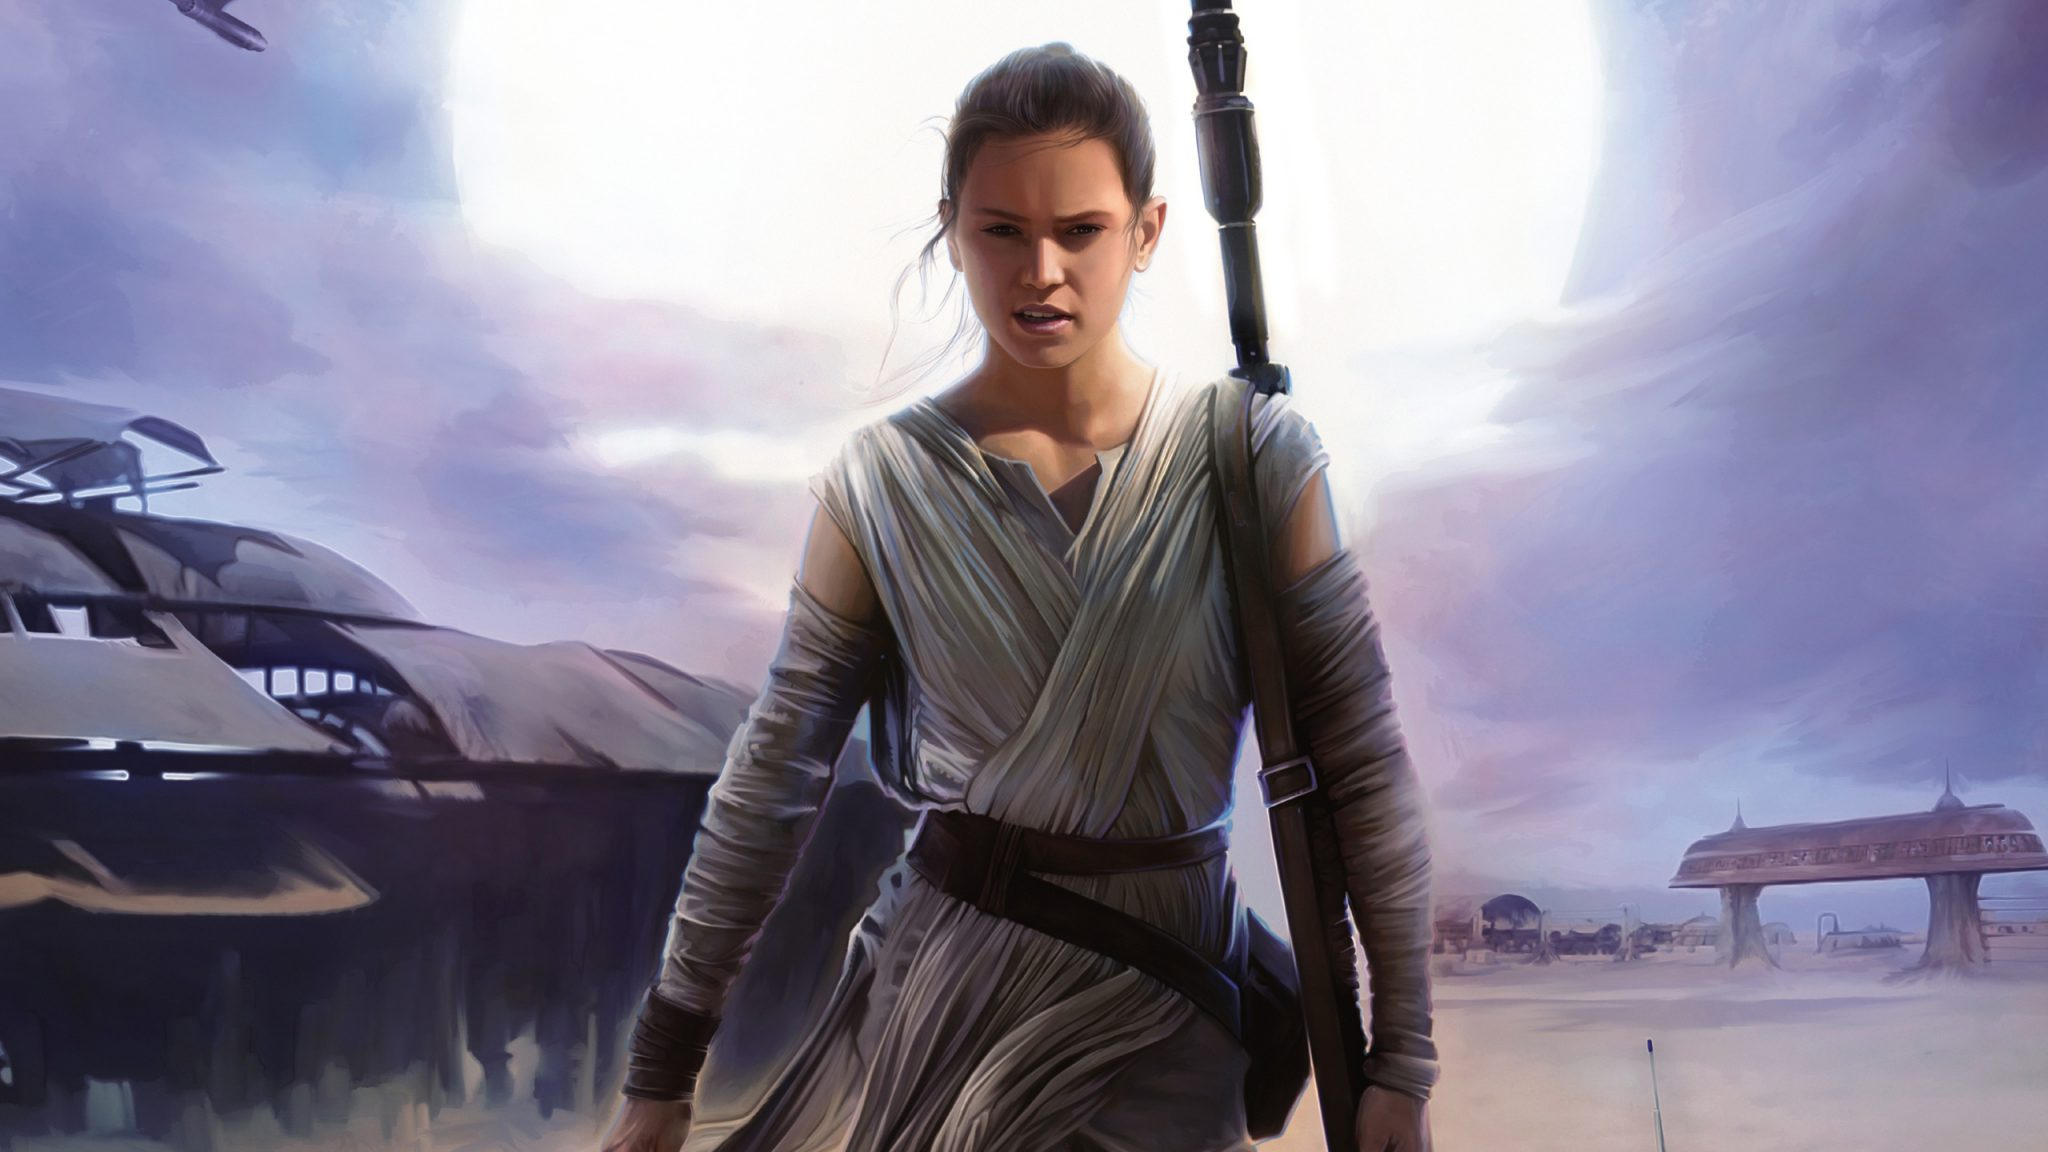 For Now, Rey From 'Star Wars: The Force Awakens' Is Not A Great Character